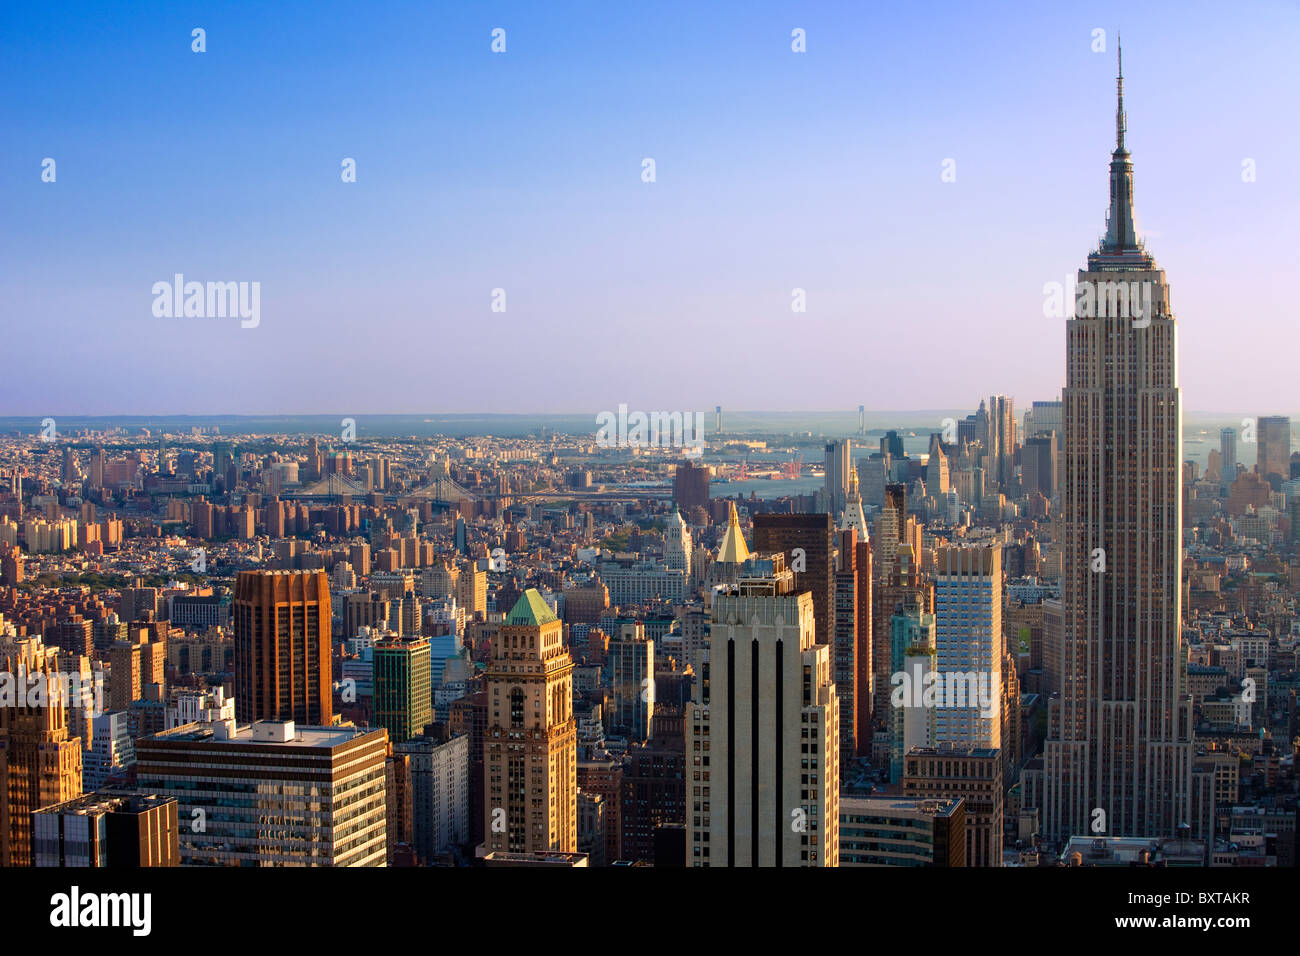 Late afternoon view of the Empire State building and the skyline of Manhattan, New York City, USA Stock Photo